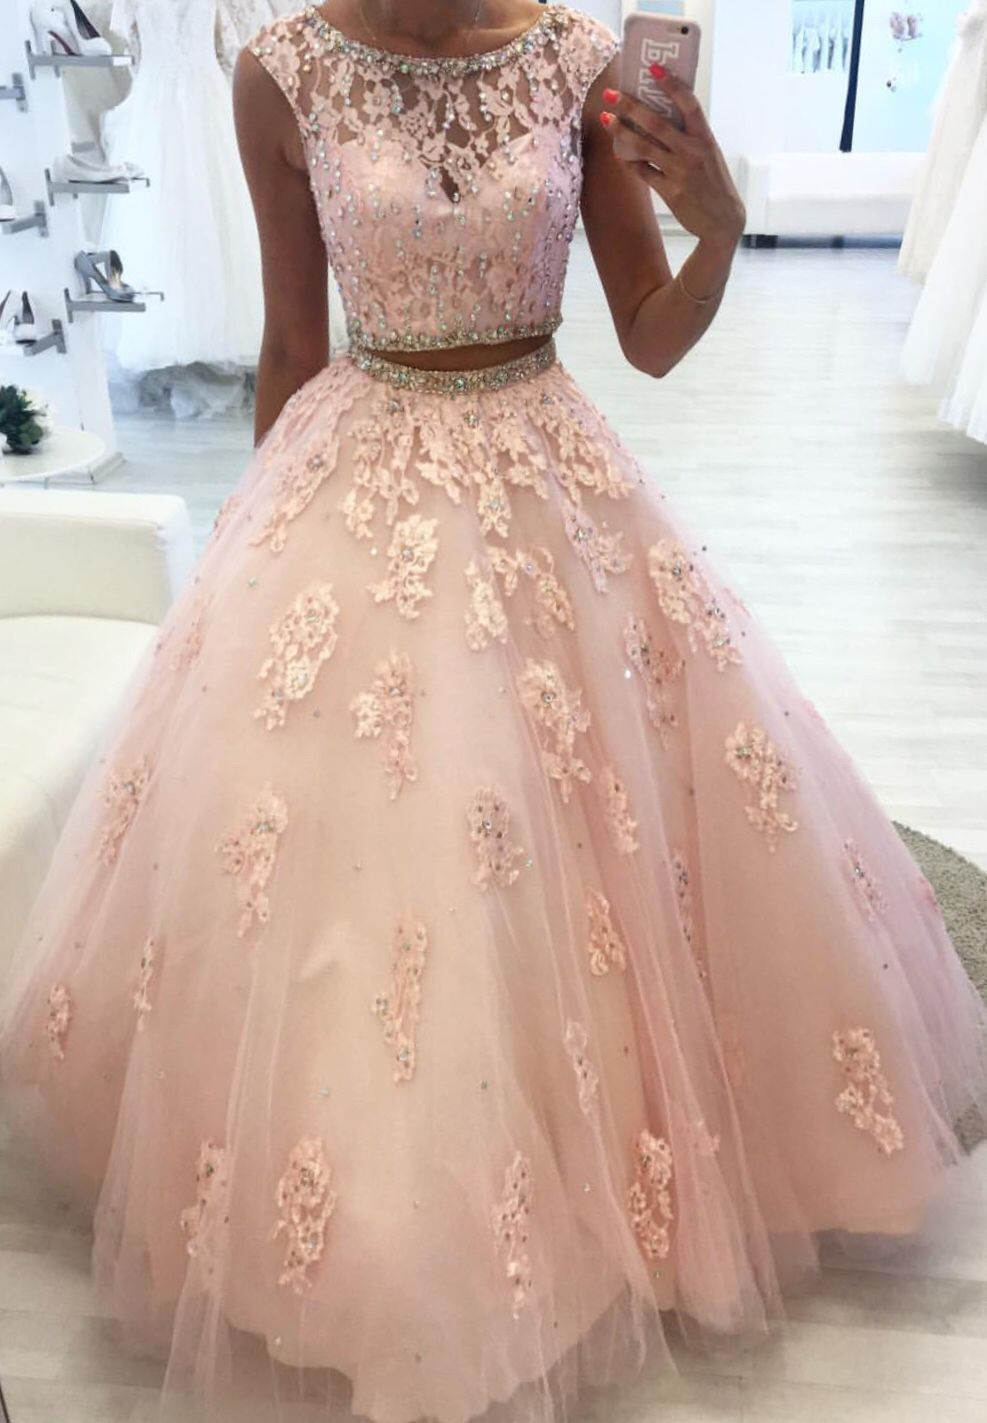 Blush Pink Lace Ball Gowns Quinceanera Dresses Two Piece Slayingdress Sweet 15 Dresses Quinceanera Dresses Blush Pretty Quinceanera Dresses [ 1423 x 987 Pixel ]